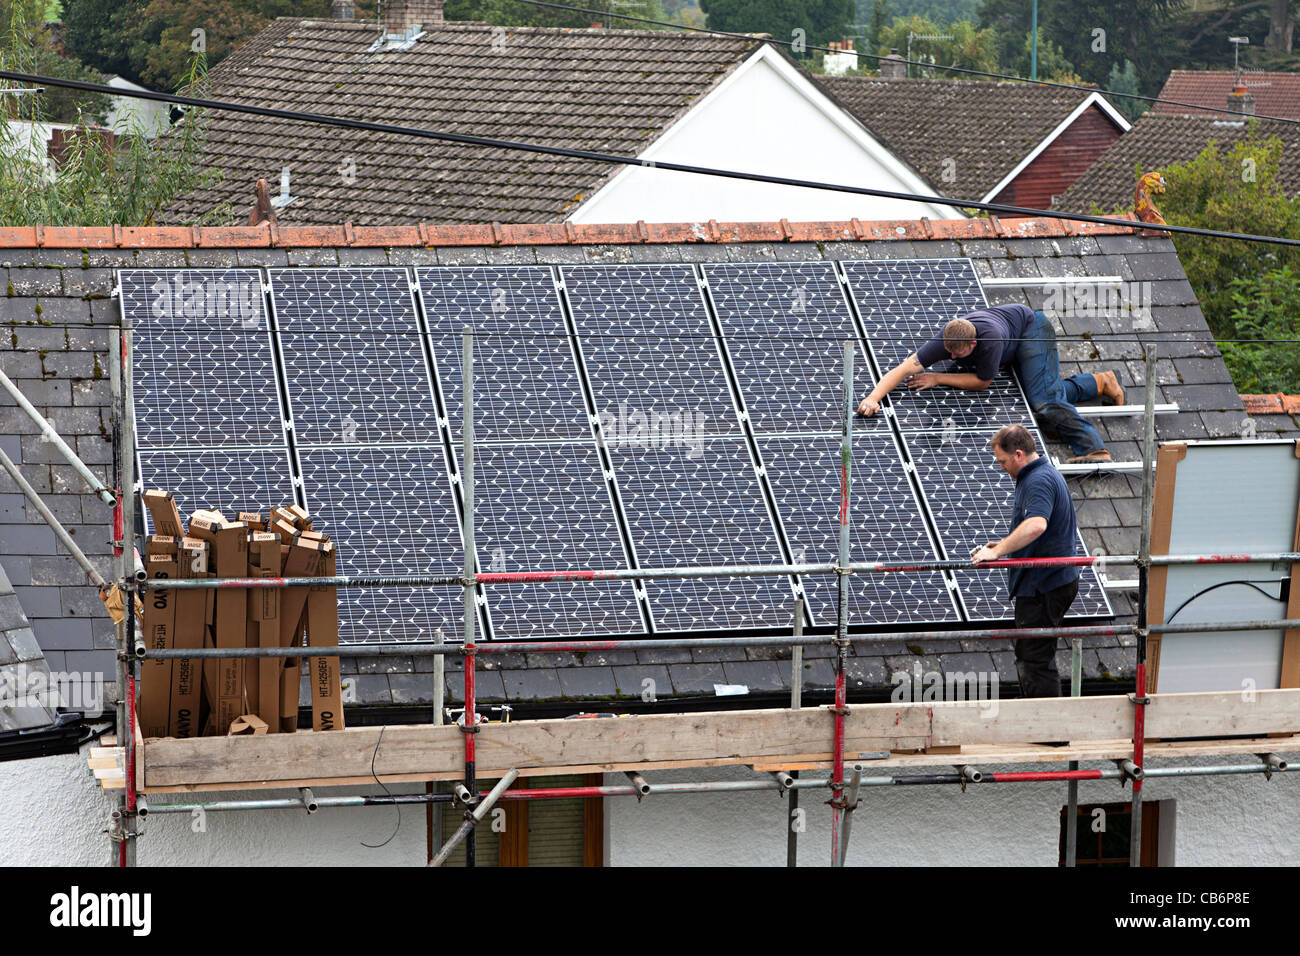 Two men fitting solar panels to house rooftop in village Wales UK Stock Photo